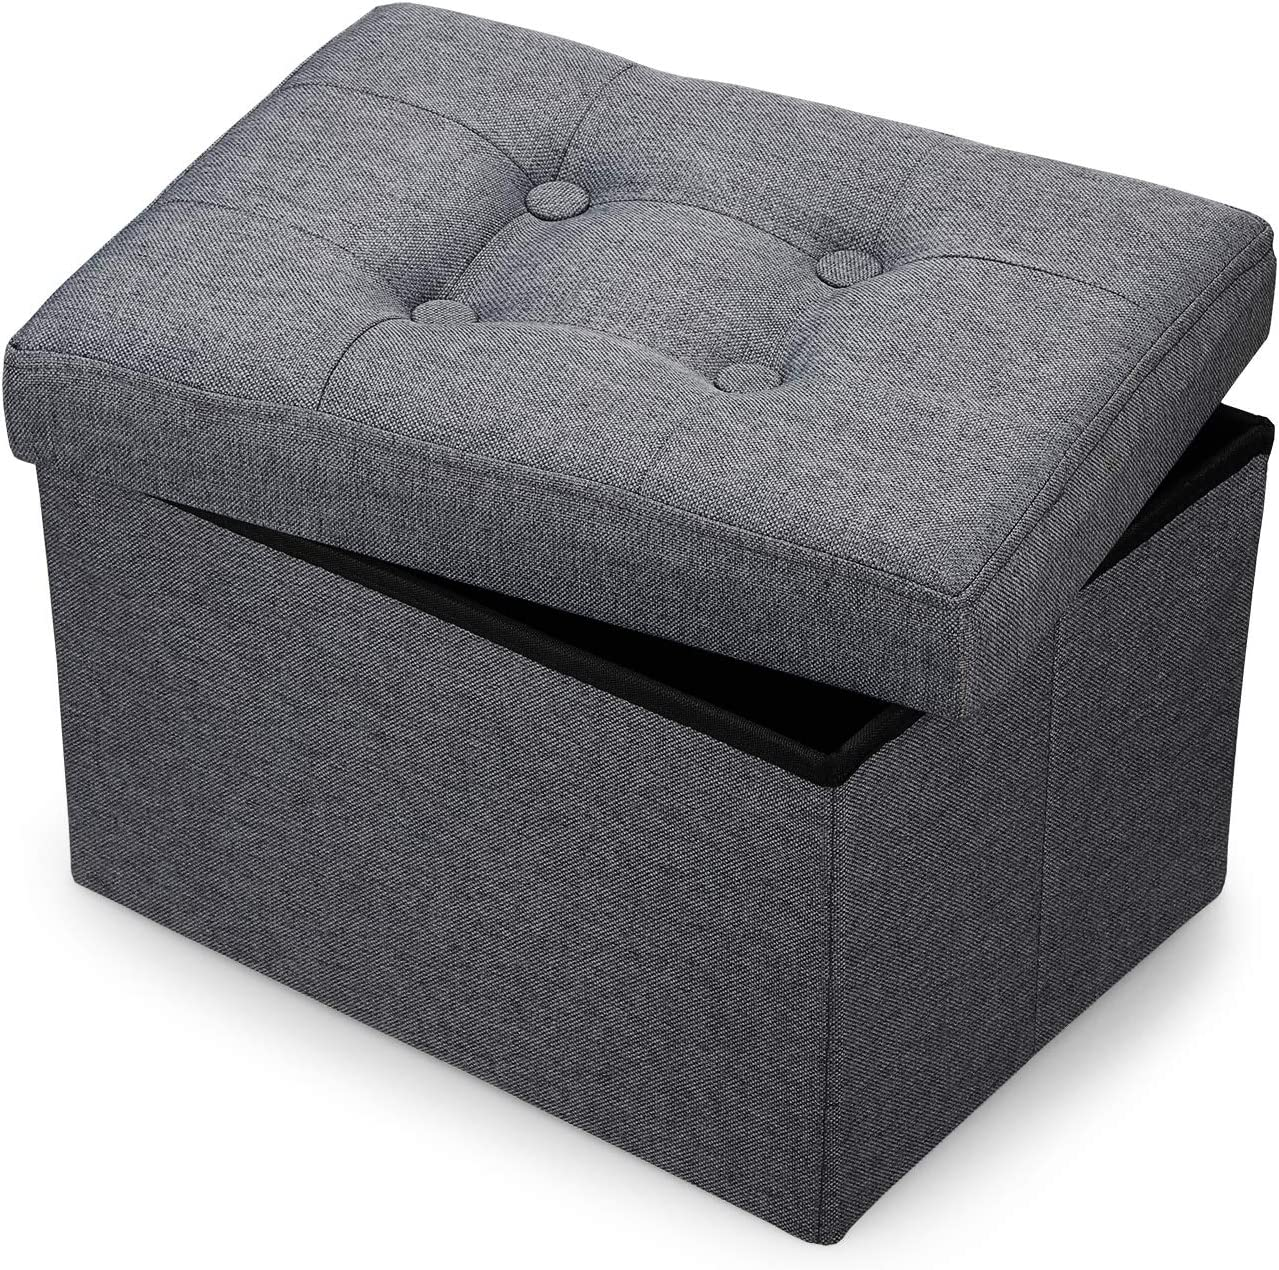 Bileeda Small and Short Foot Rest Stool Ottoman Storage Stool Sofa Seat Coffee Table Linen Fabric Grey